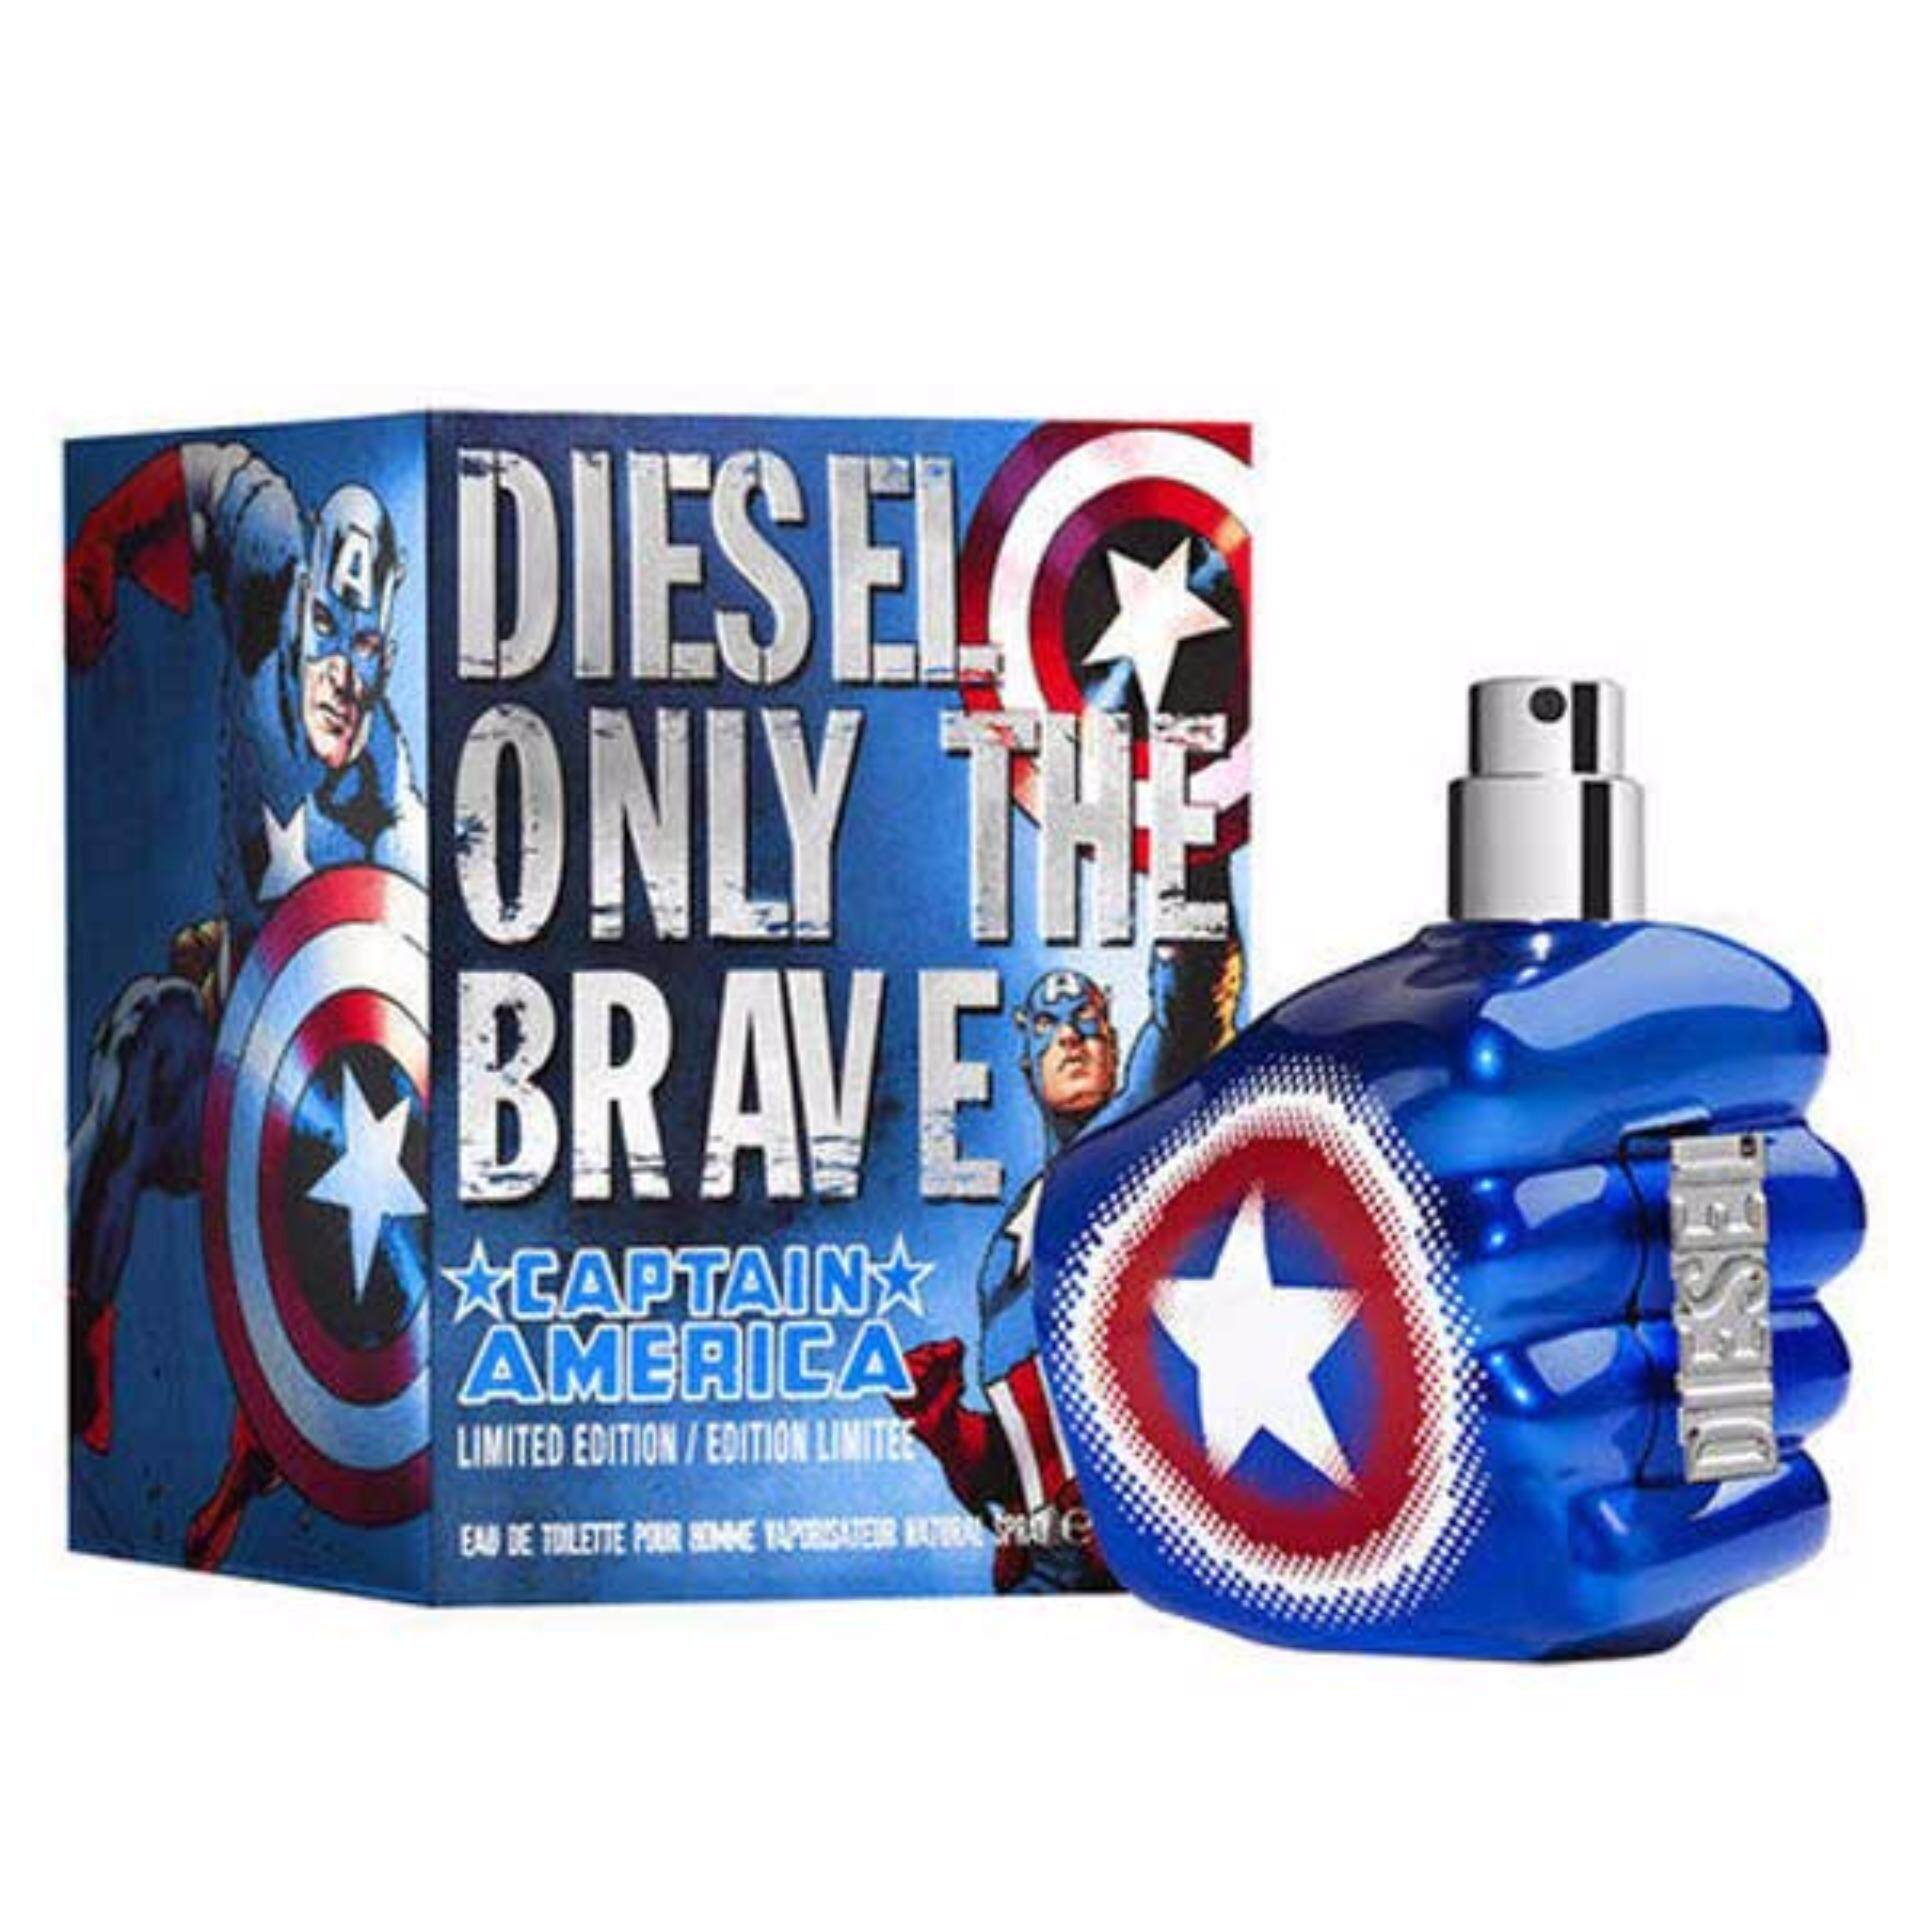 DIESEL ONLY THE BRAVE CAPTAIN